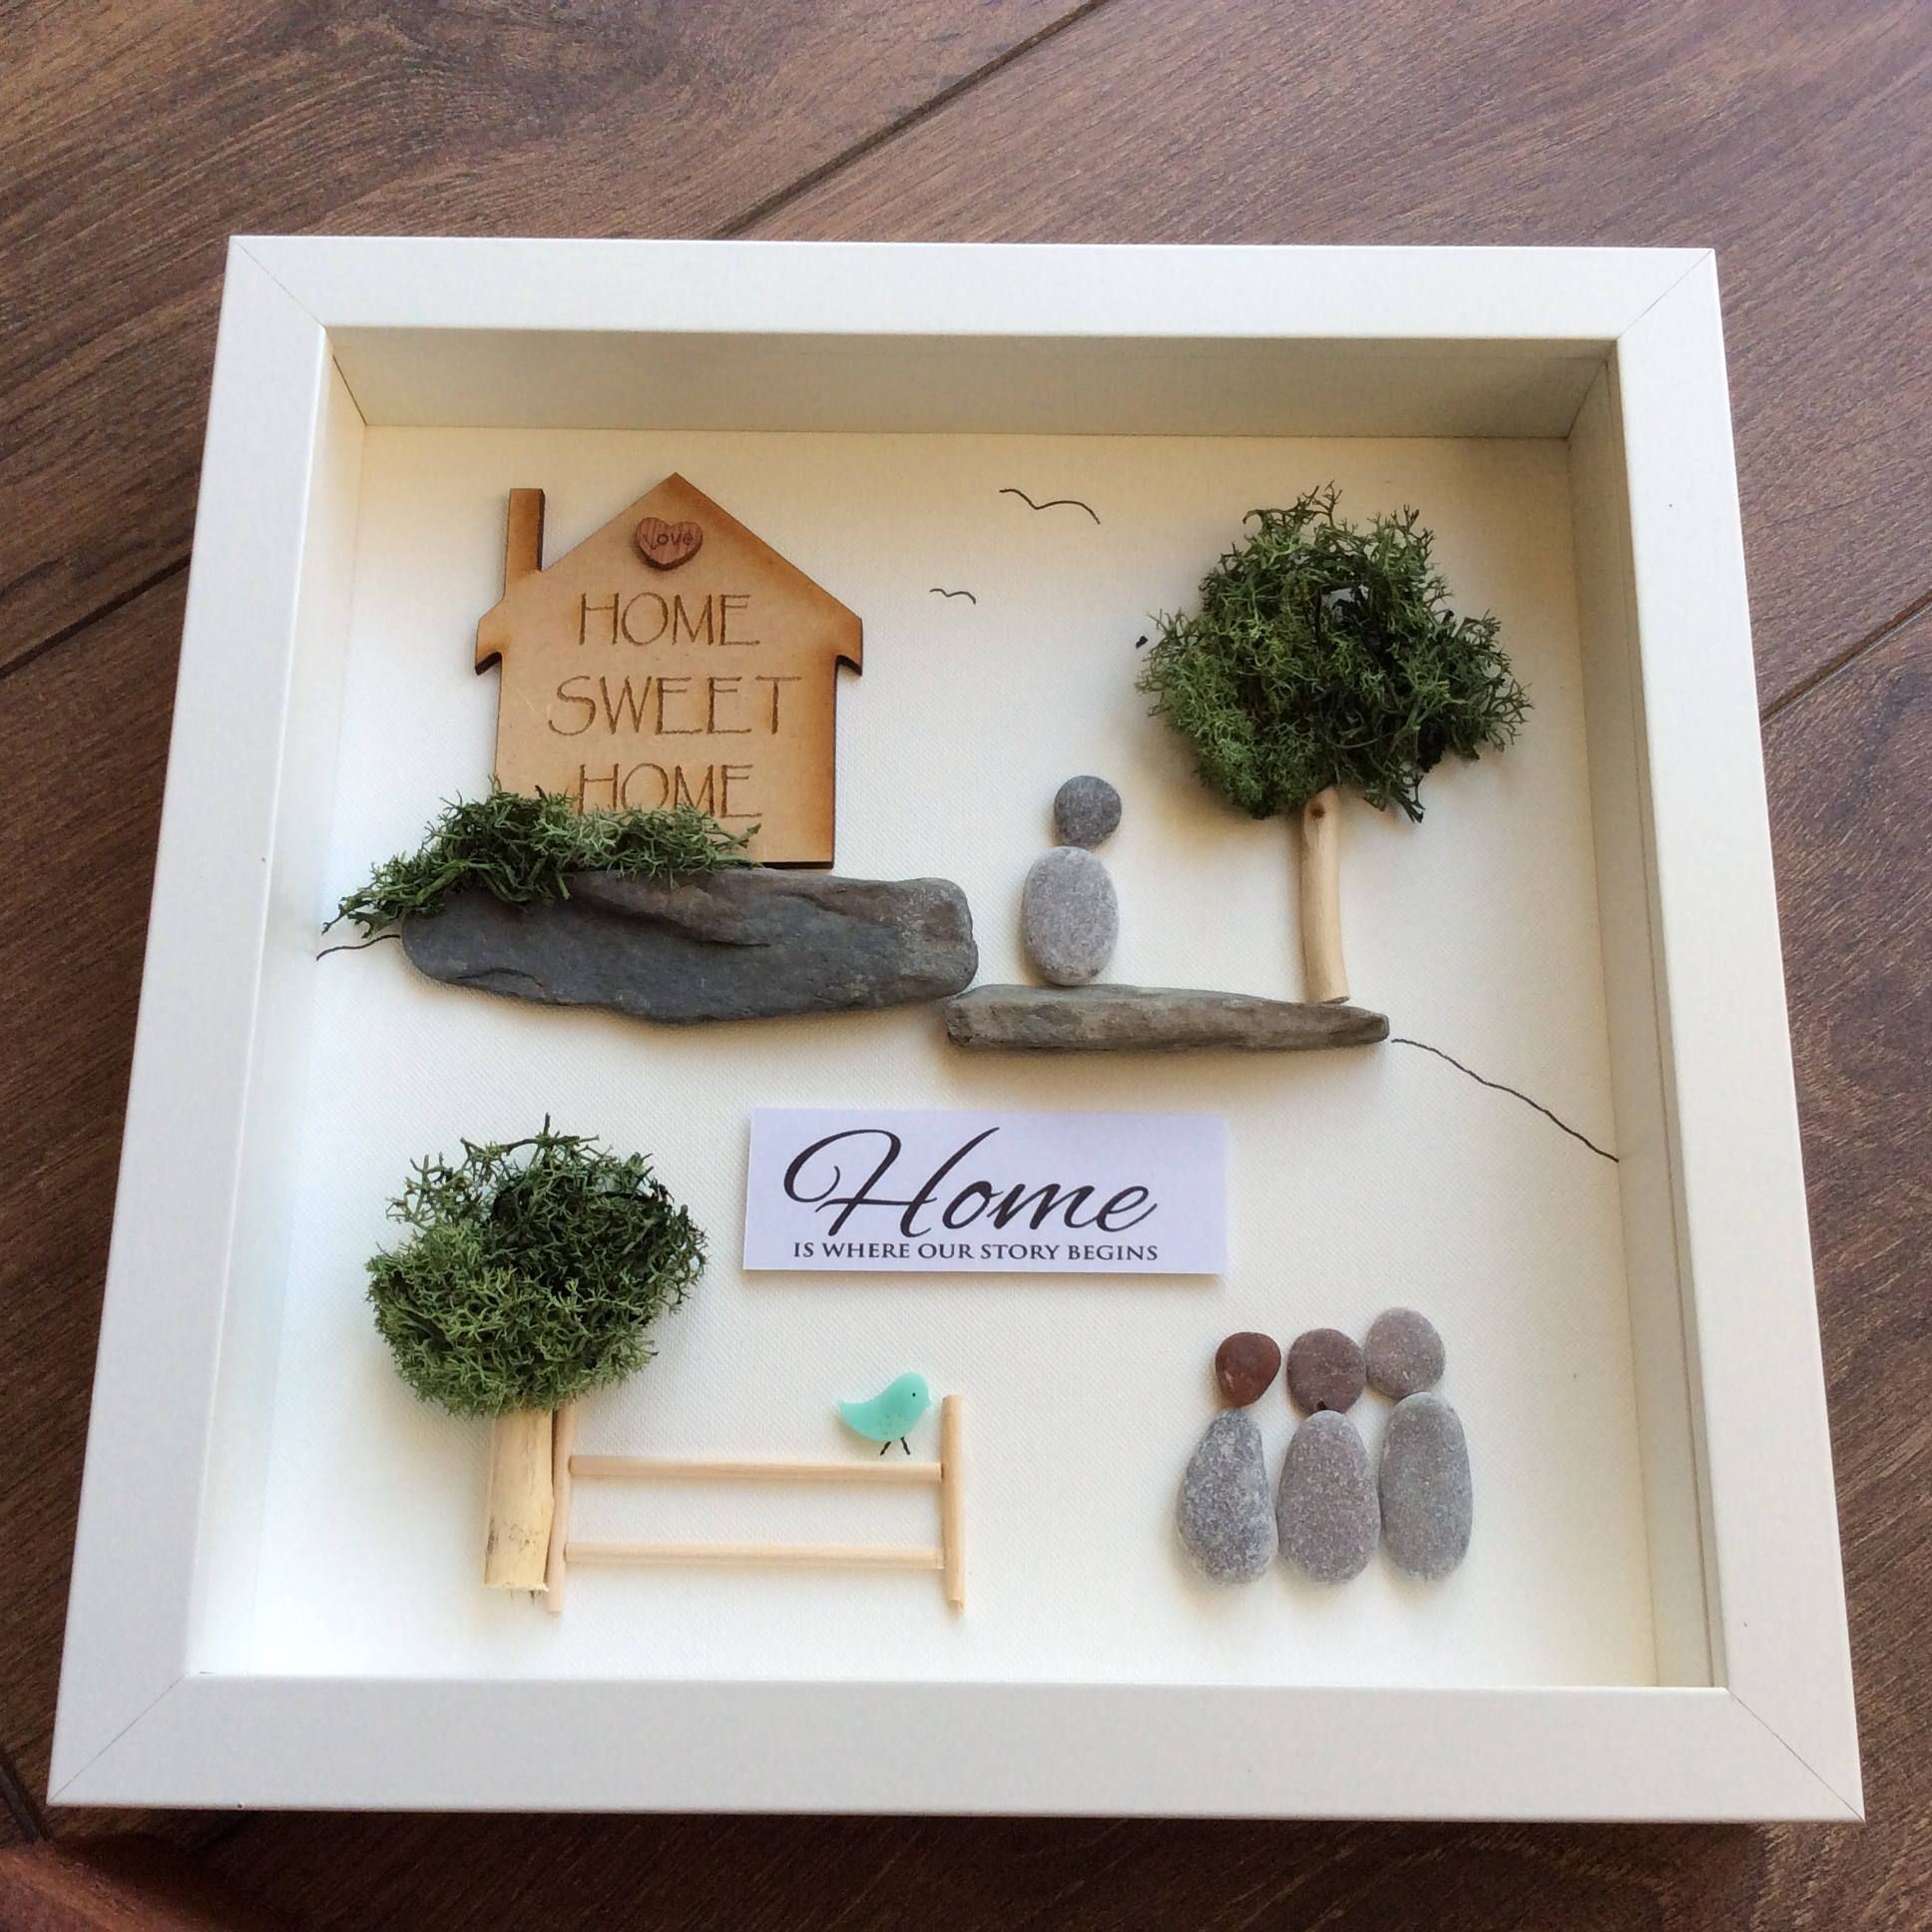 Pebbleart home moving house present home sweet home moving in pebbleart home moving house present home sweet home moving in gift present negle Images